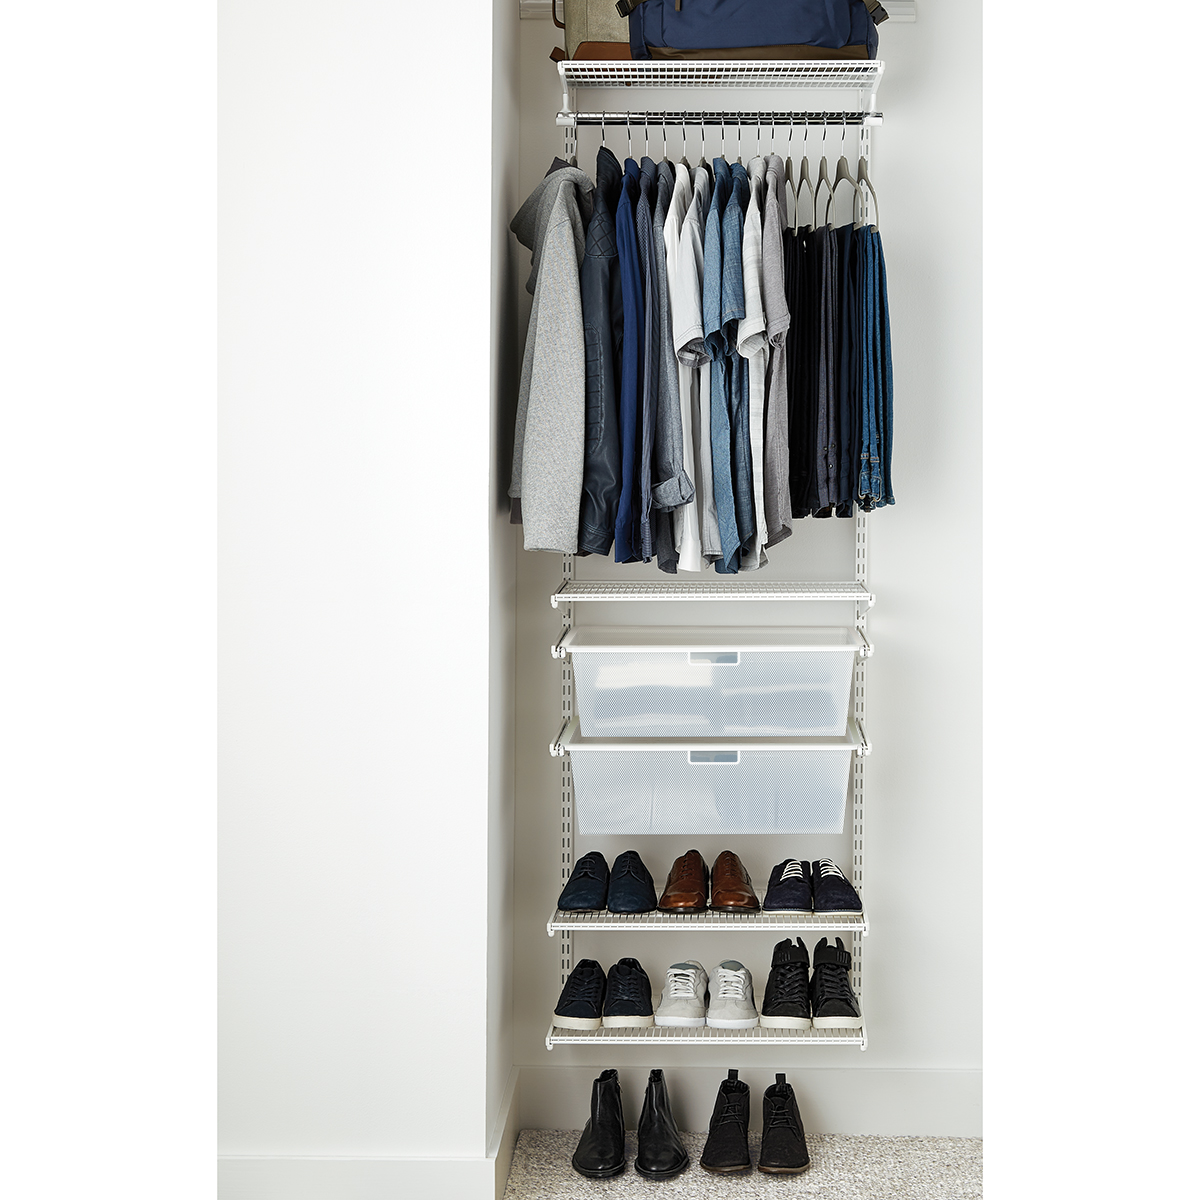 Elfa Classic 2 White Small Reach In Closet